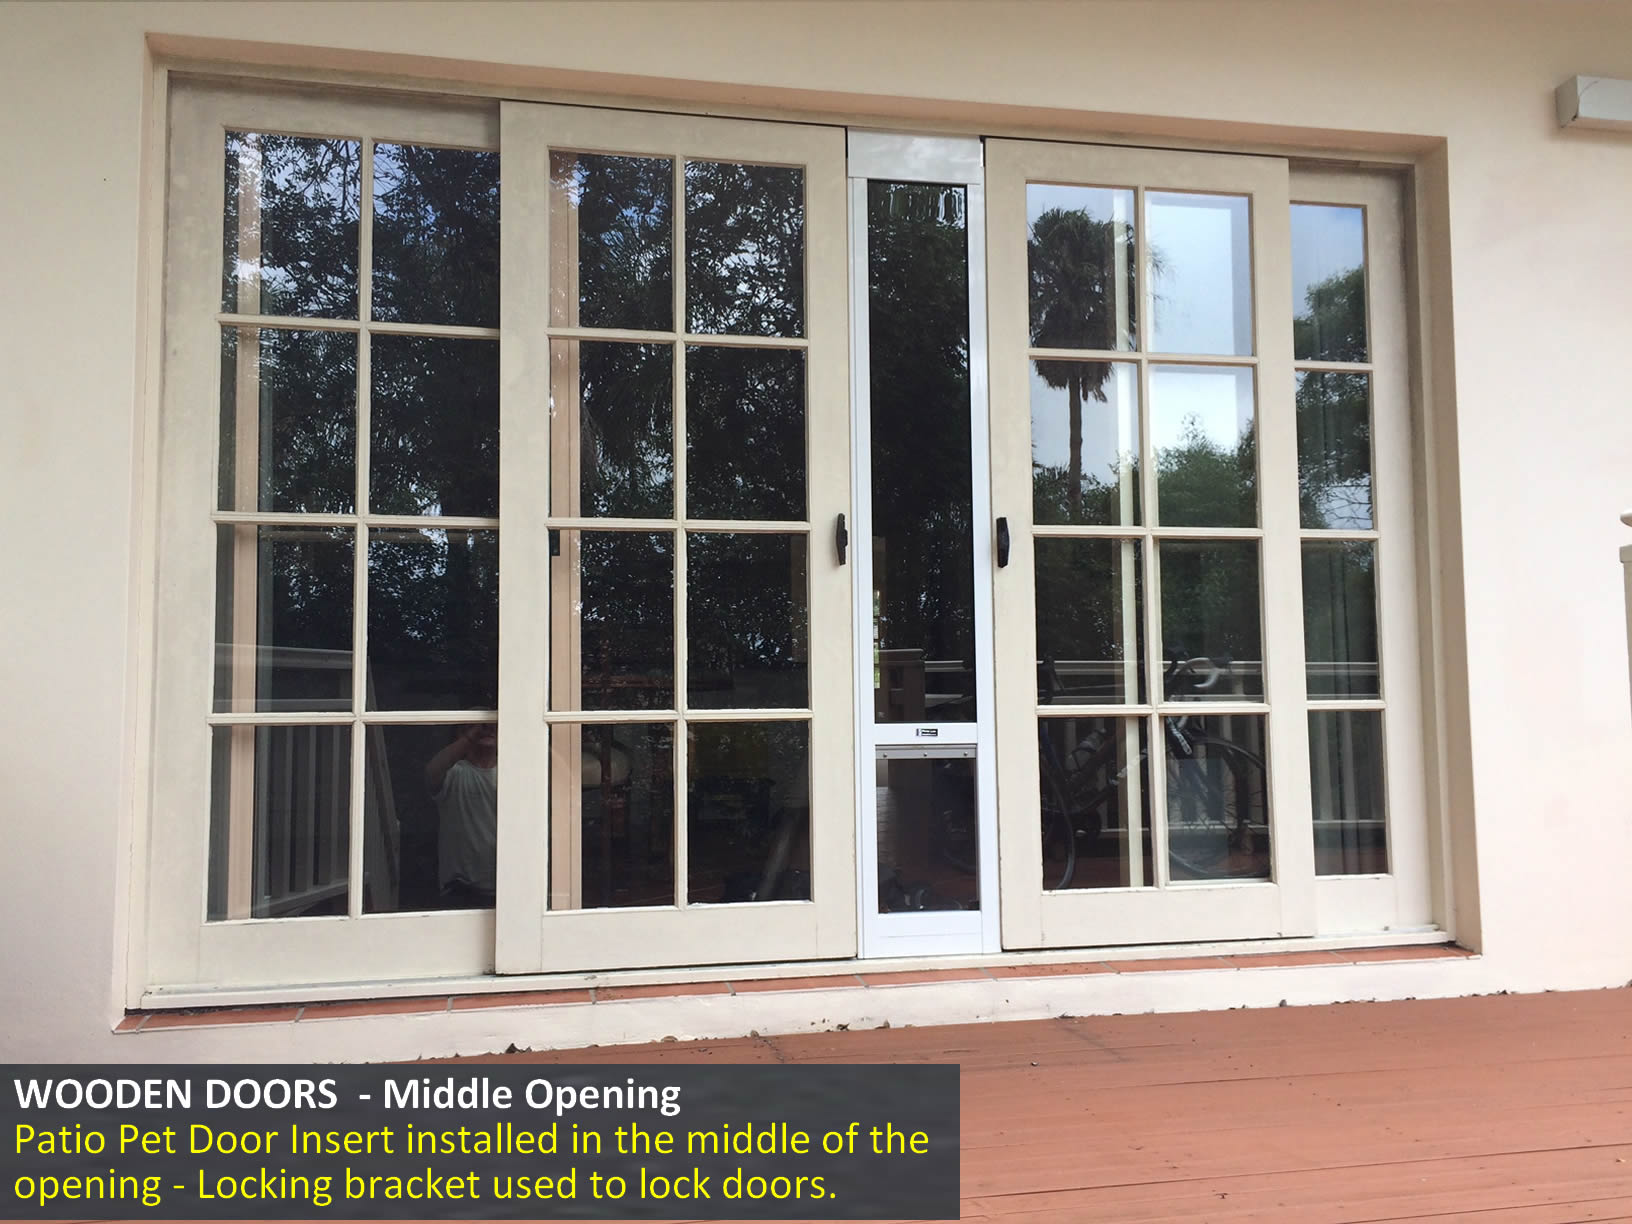 Wooden Doors - Middle Opening